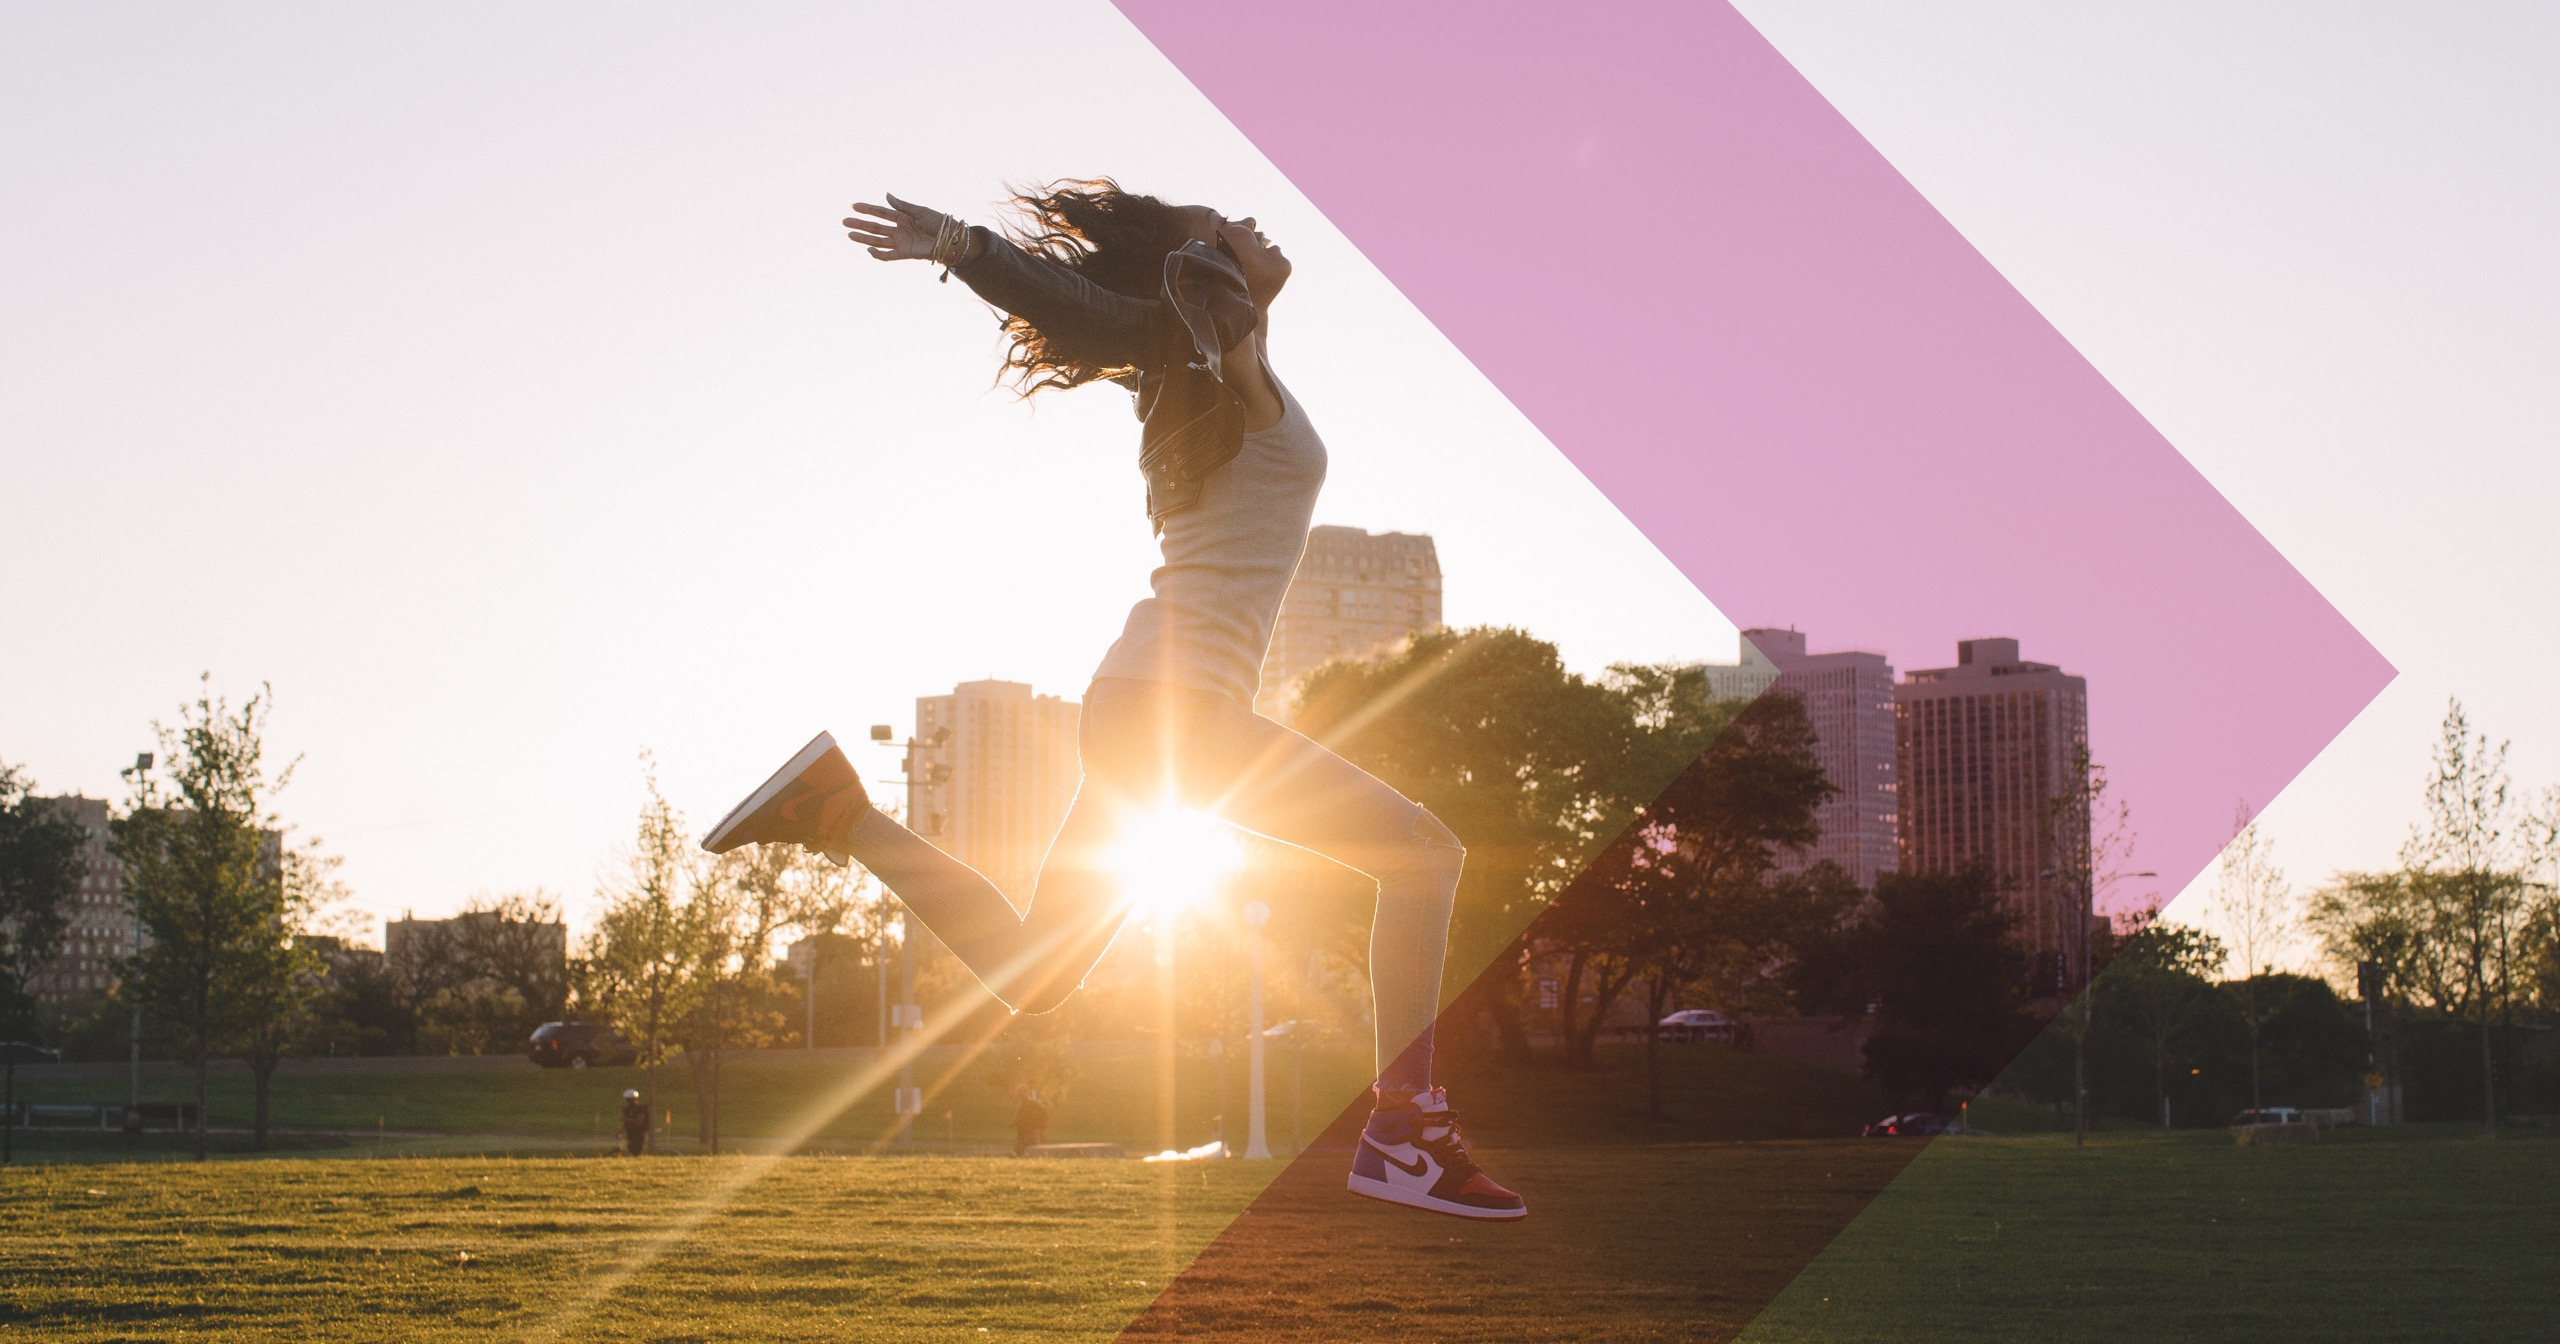 A woman jumps for joy in a field with the sun behind her